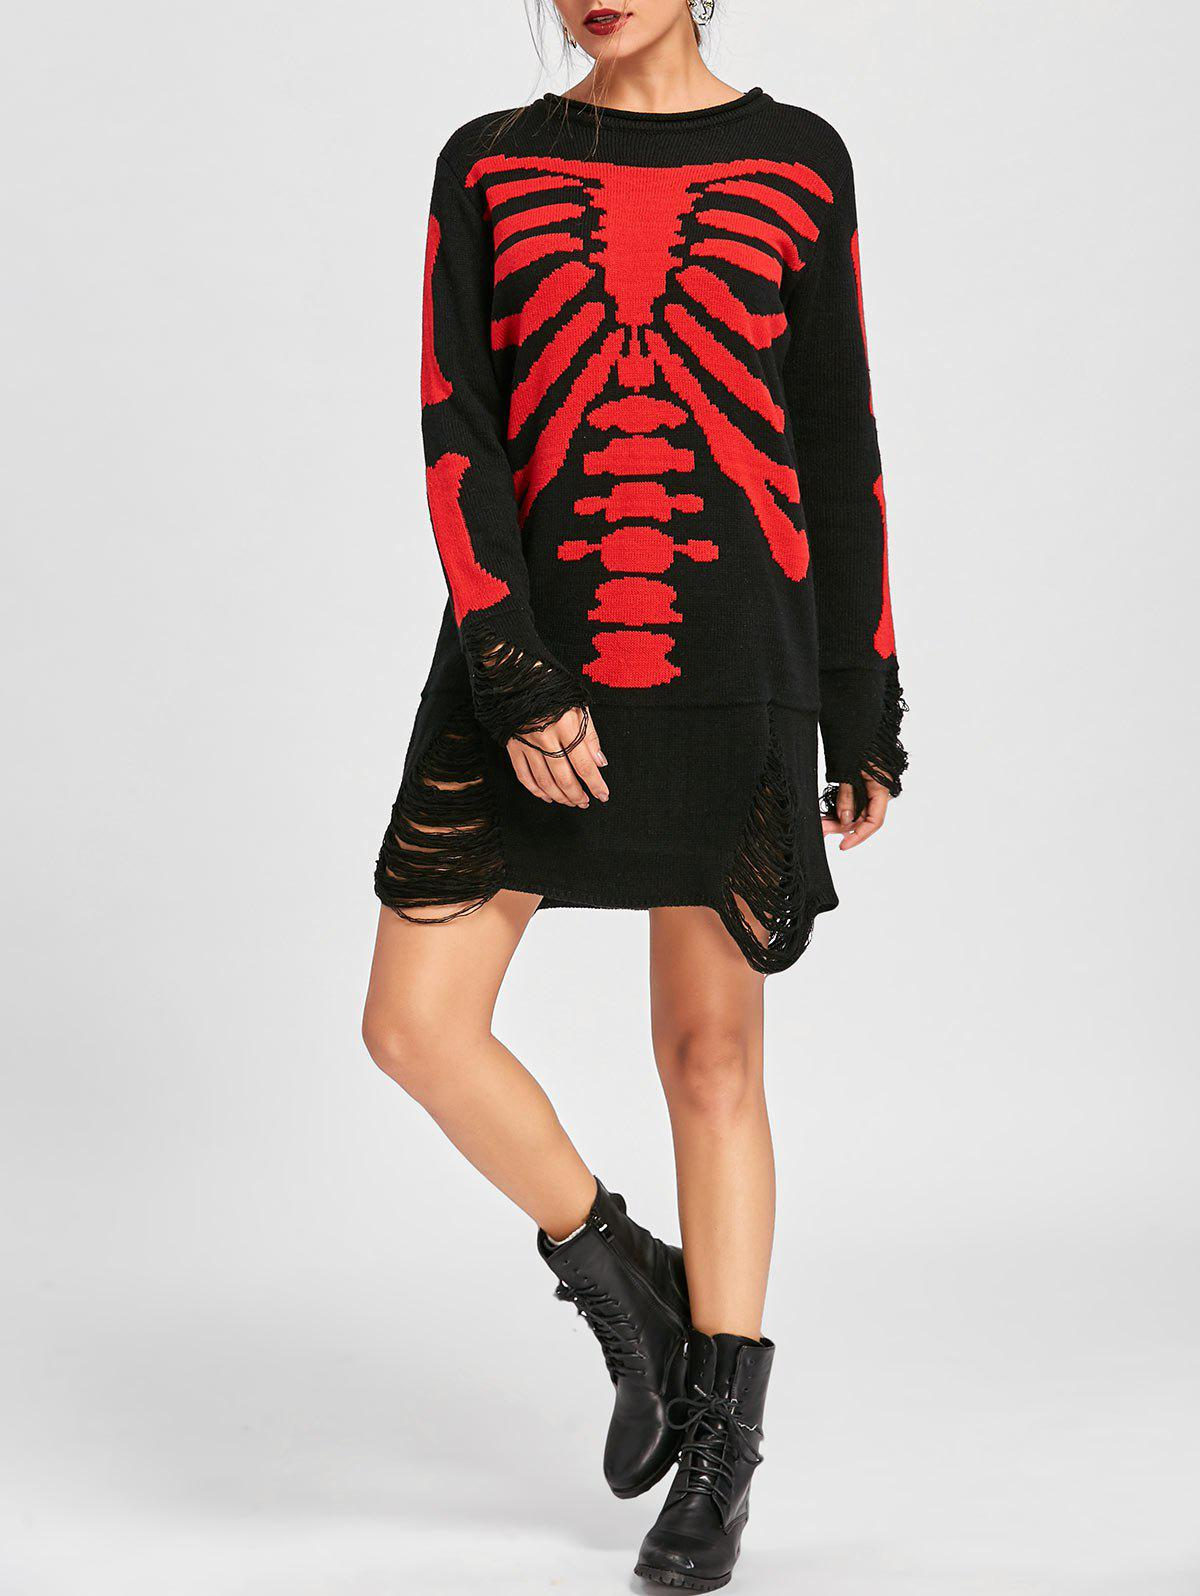 Halloween Distressed Skeleton Jumper DressWOMEN<br><br>Size: XL; Color: BLACK RED; Style: Brief; Material: Acrylic; Silhouette: Straight; Dresses Length: Mini; Neckline: Crew Neck; Sleeve Length: Long Sleeves; Pattern Type: Skeleton; With Belt: No; Season: Fall,Spring; Weight: 0.5200kg; Package Contents: 1 x Dress; Occasion: Causal,Club,Night Out;